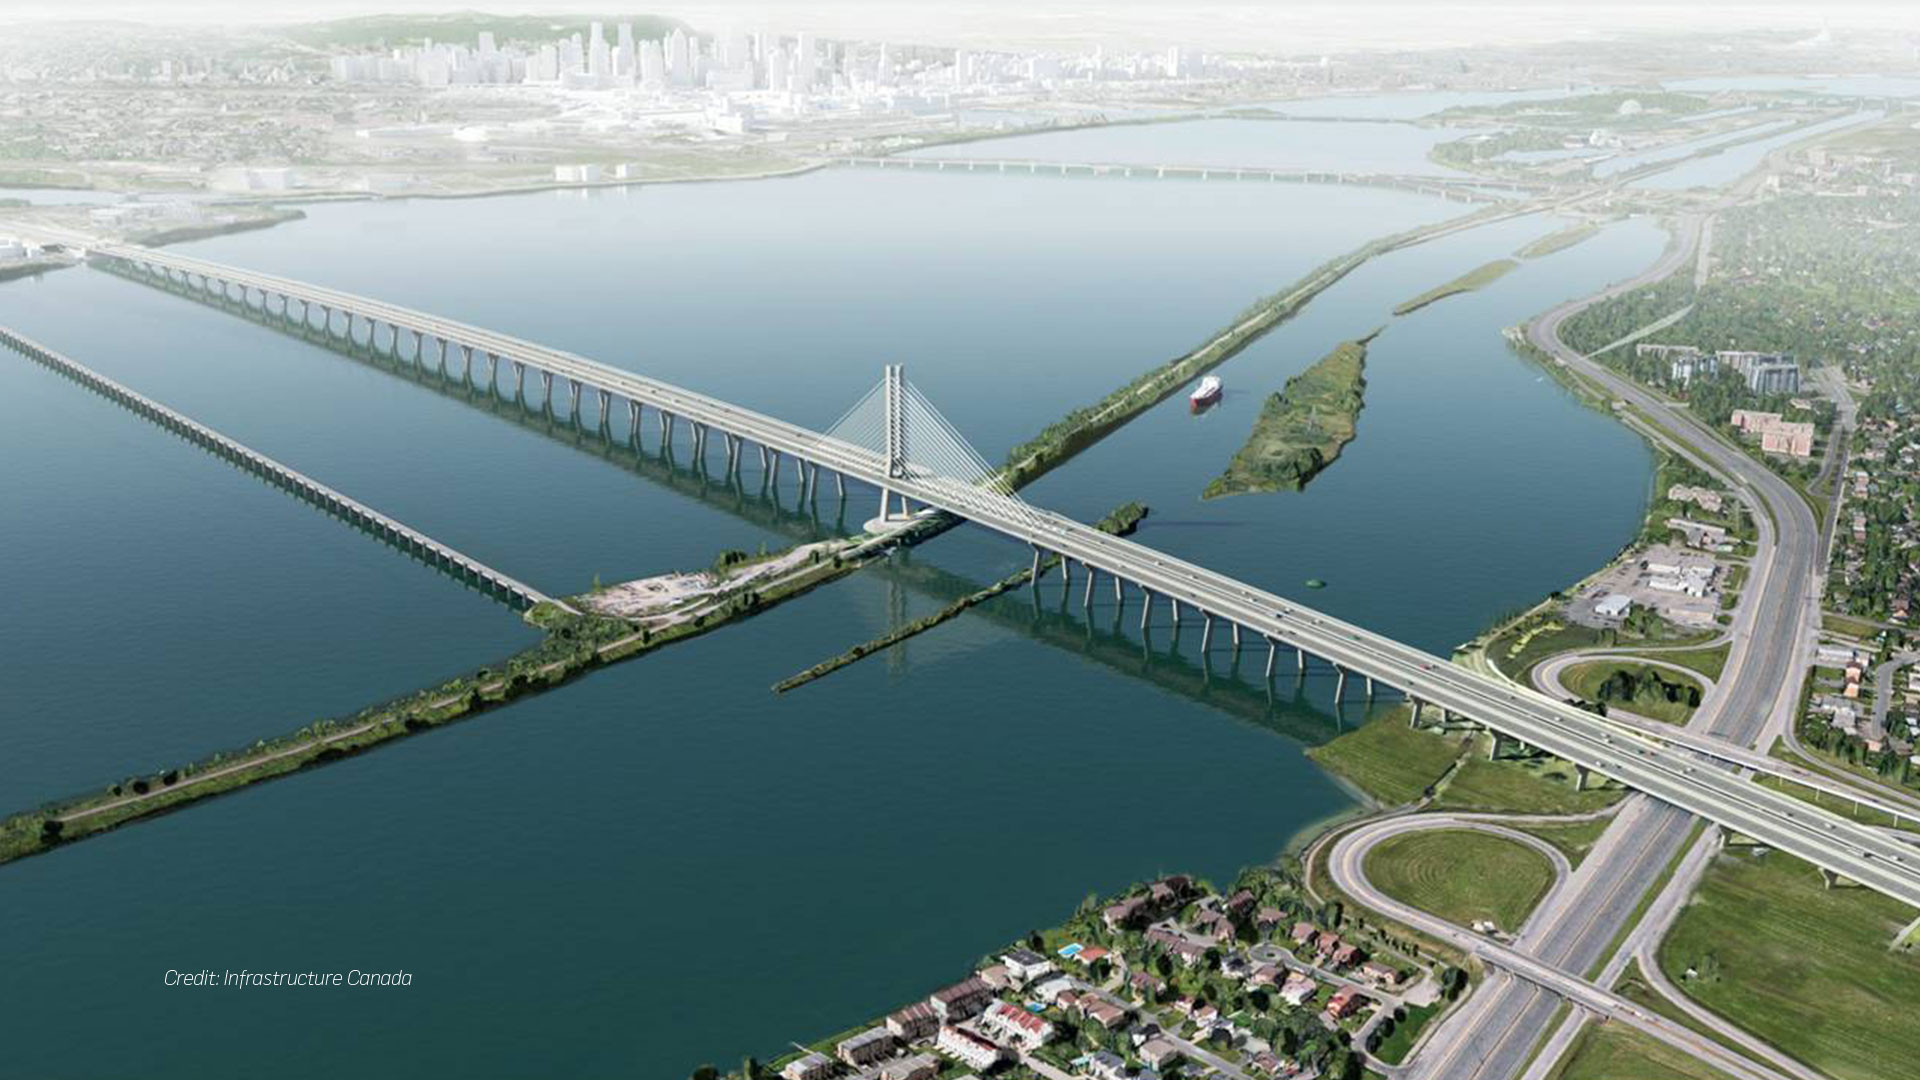 New Champlain Bridge Corridor Project: Design and Construction | SNC ...